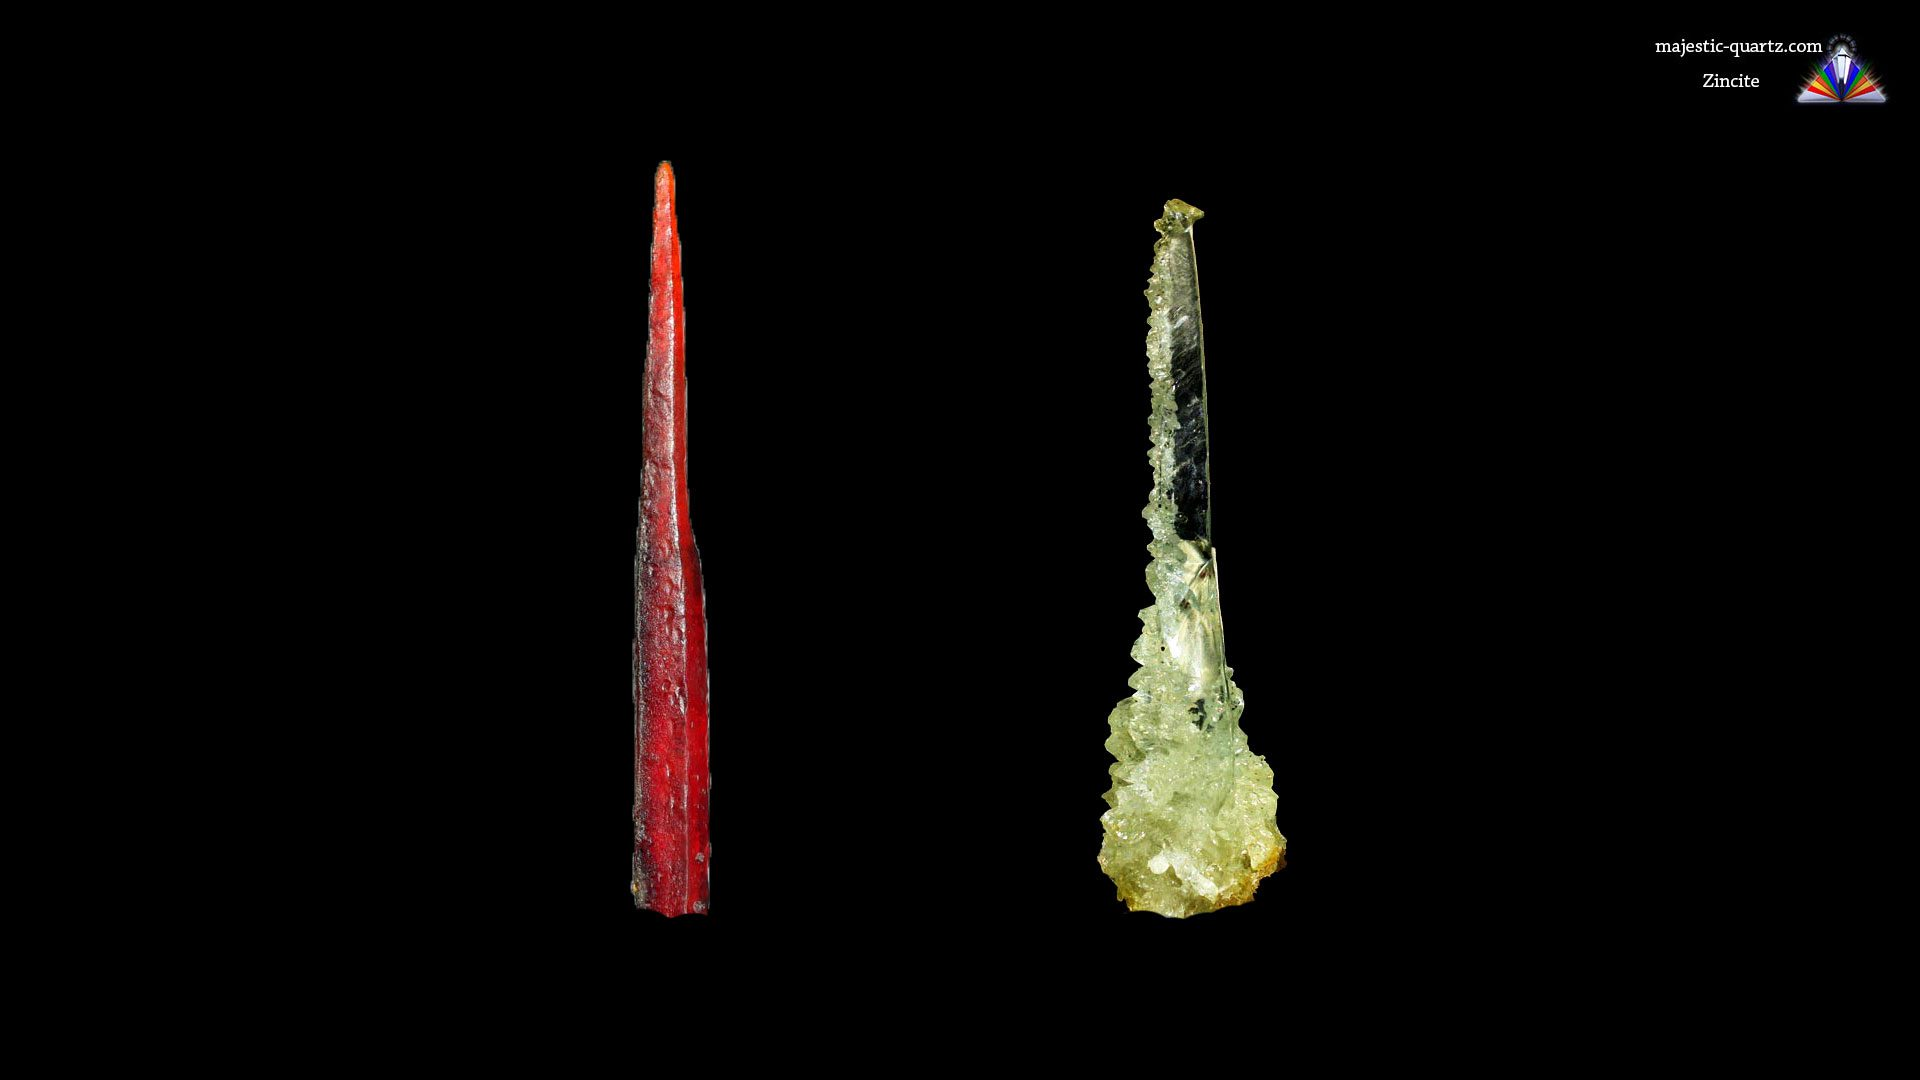 Zincite Properties and Meaning - Mineral Specimen